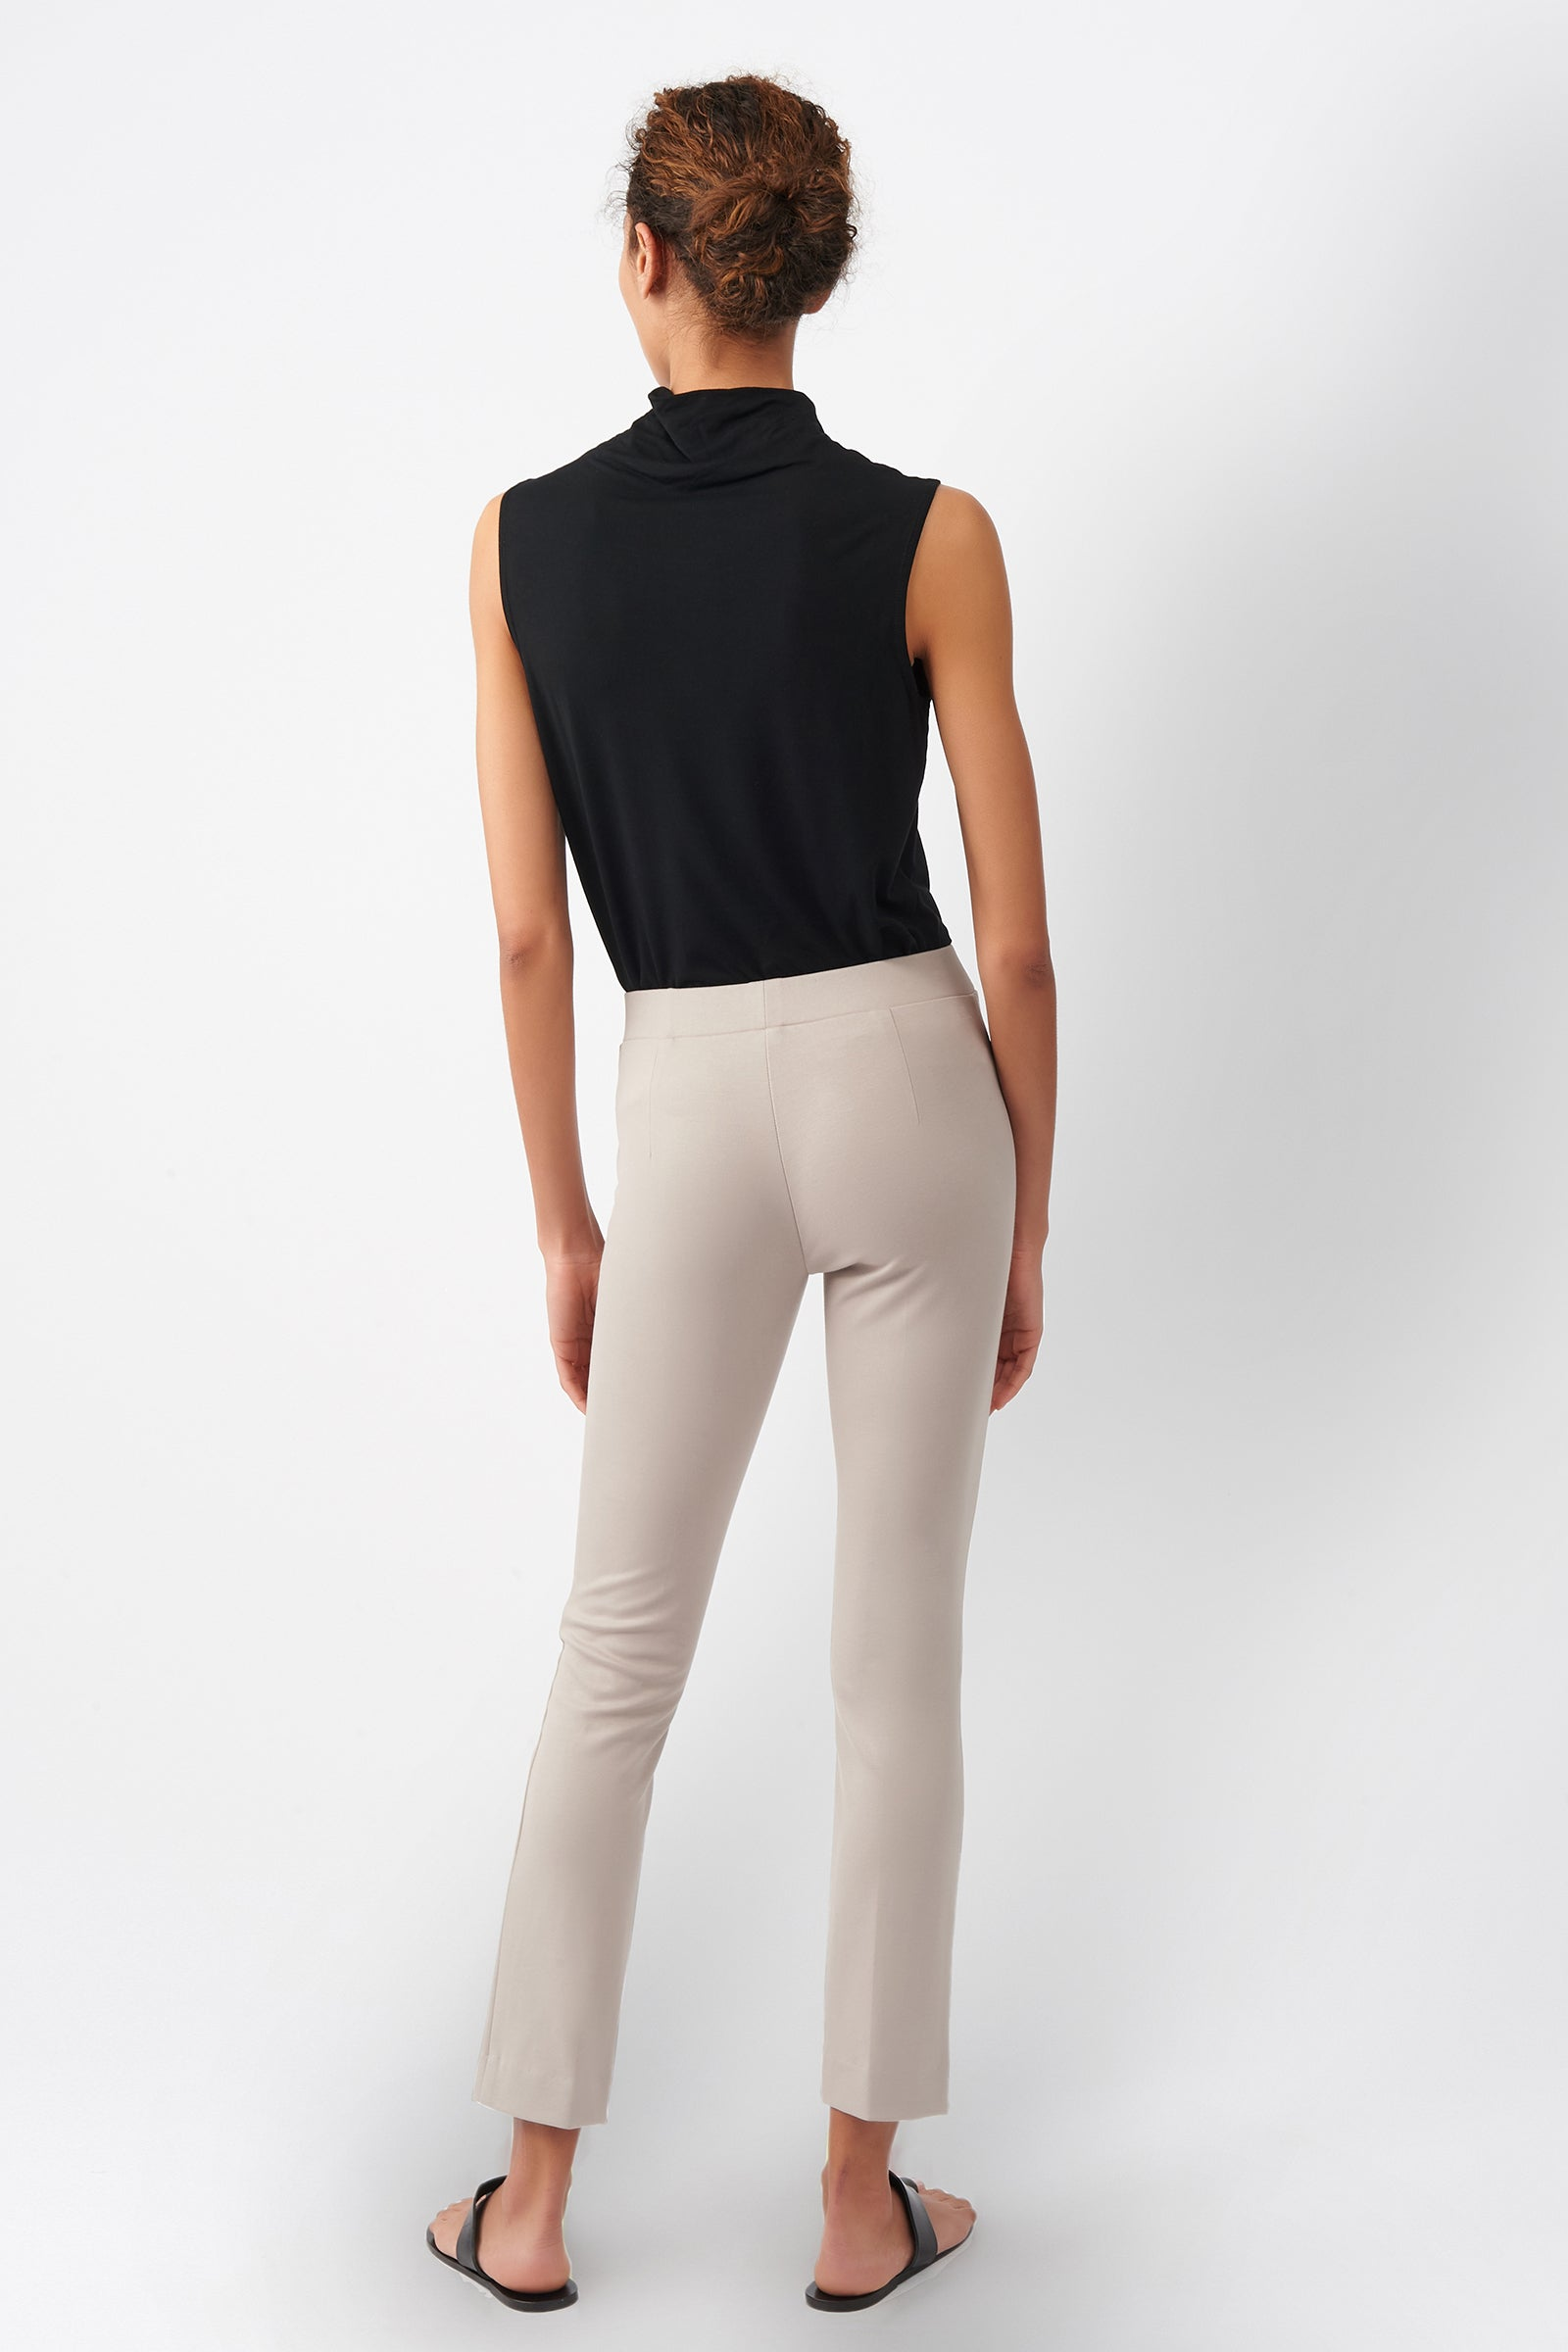 Kal Rieman Pintuck Ponte Ankle Pant in Taupe on Model Front View